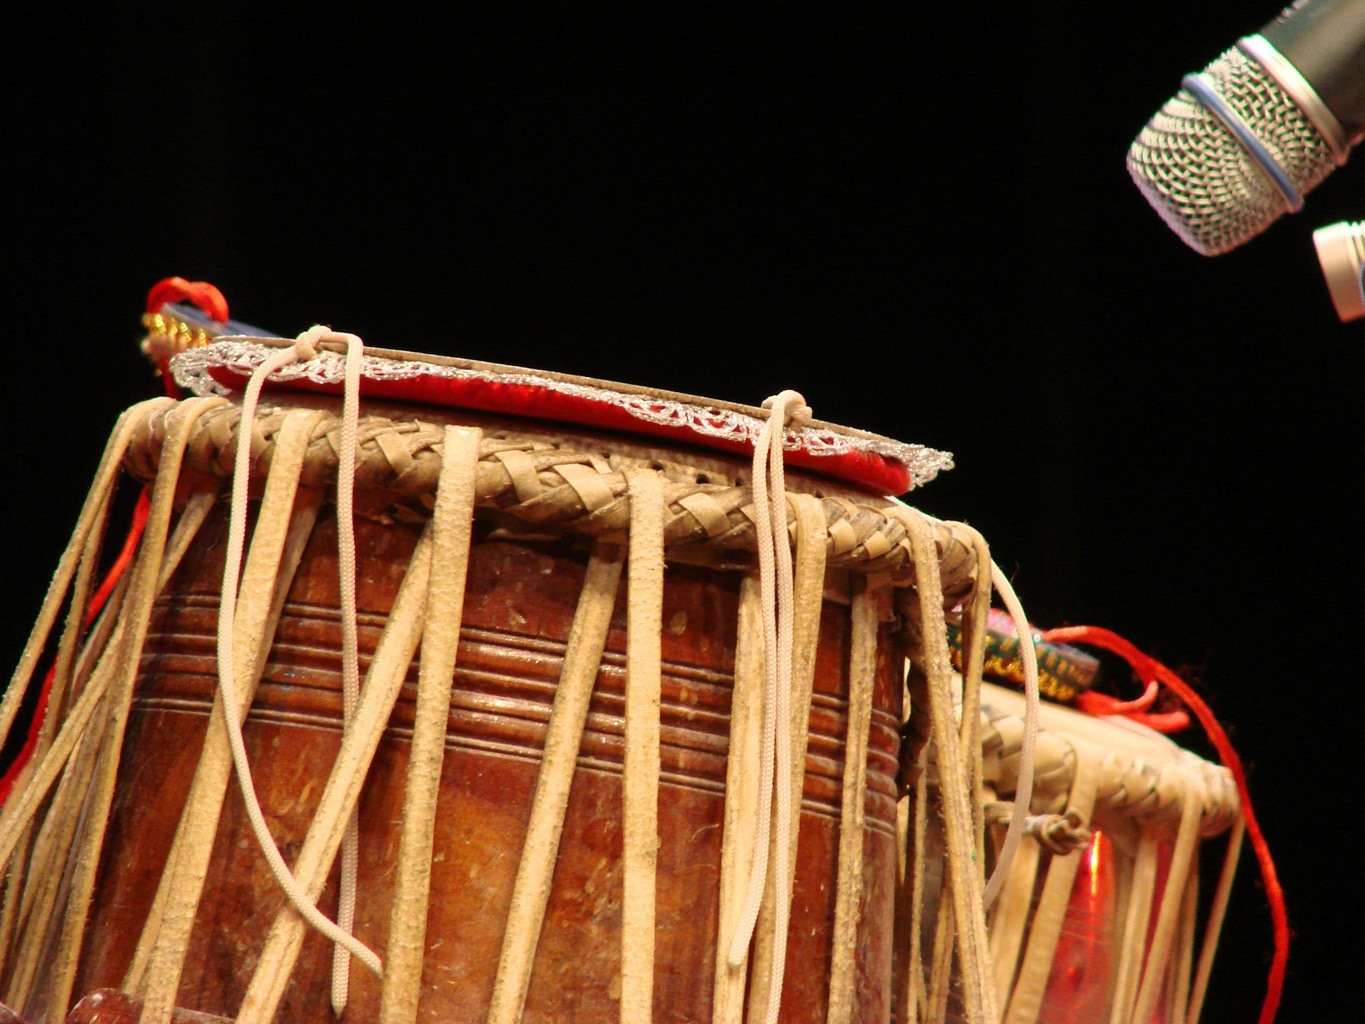 Tabla Musical Instrument Hq Hd Wallpapers Free Download Wallpapers